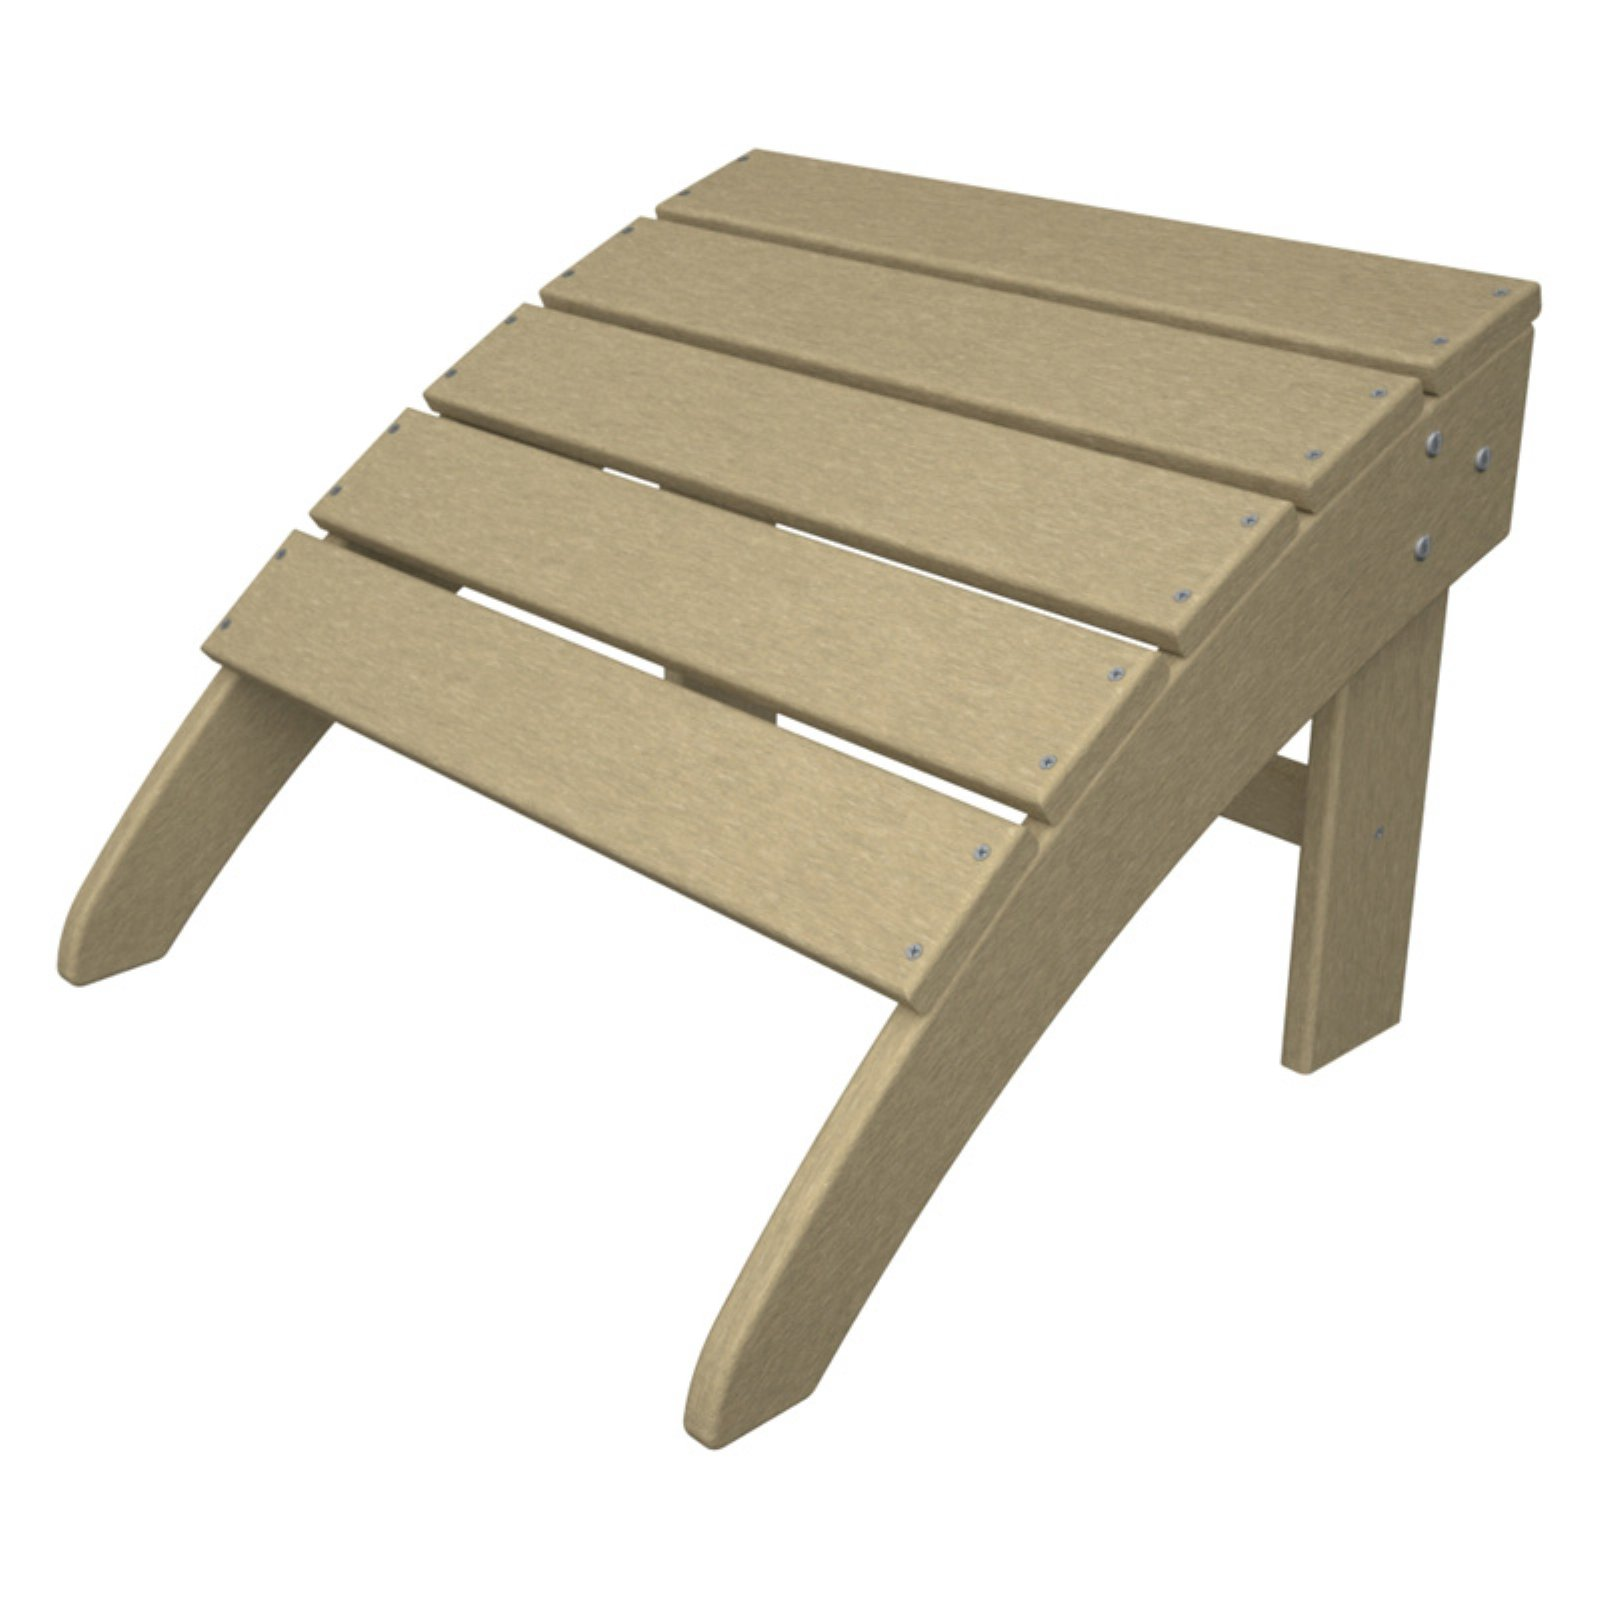 Trex Outdoor Furniture Recycled Plastic Cape Cod Ottoman